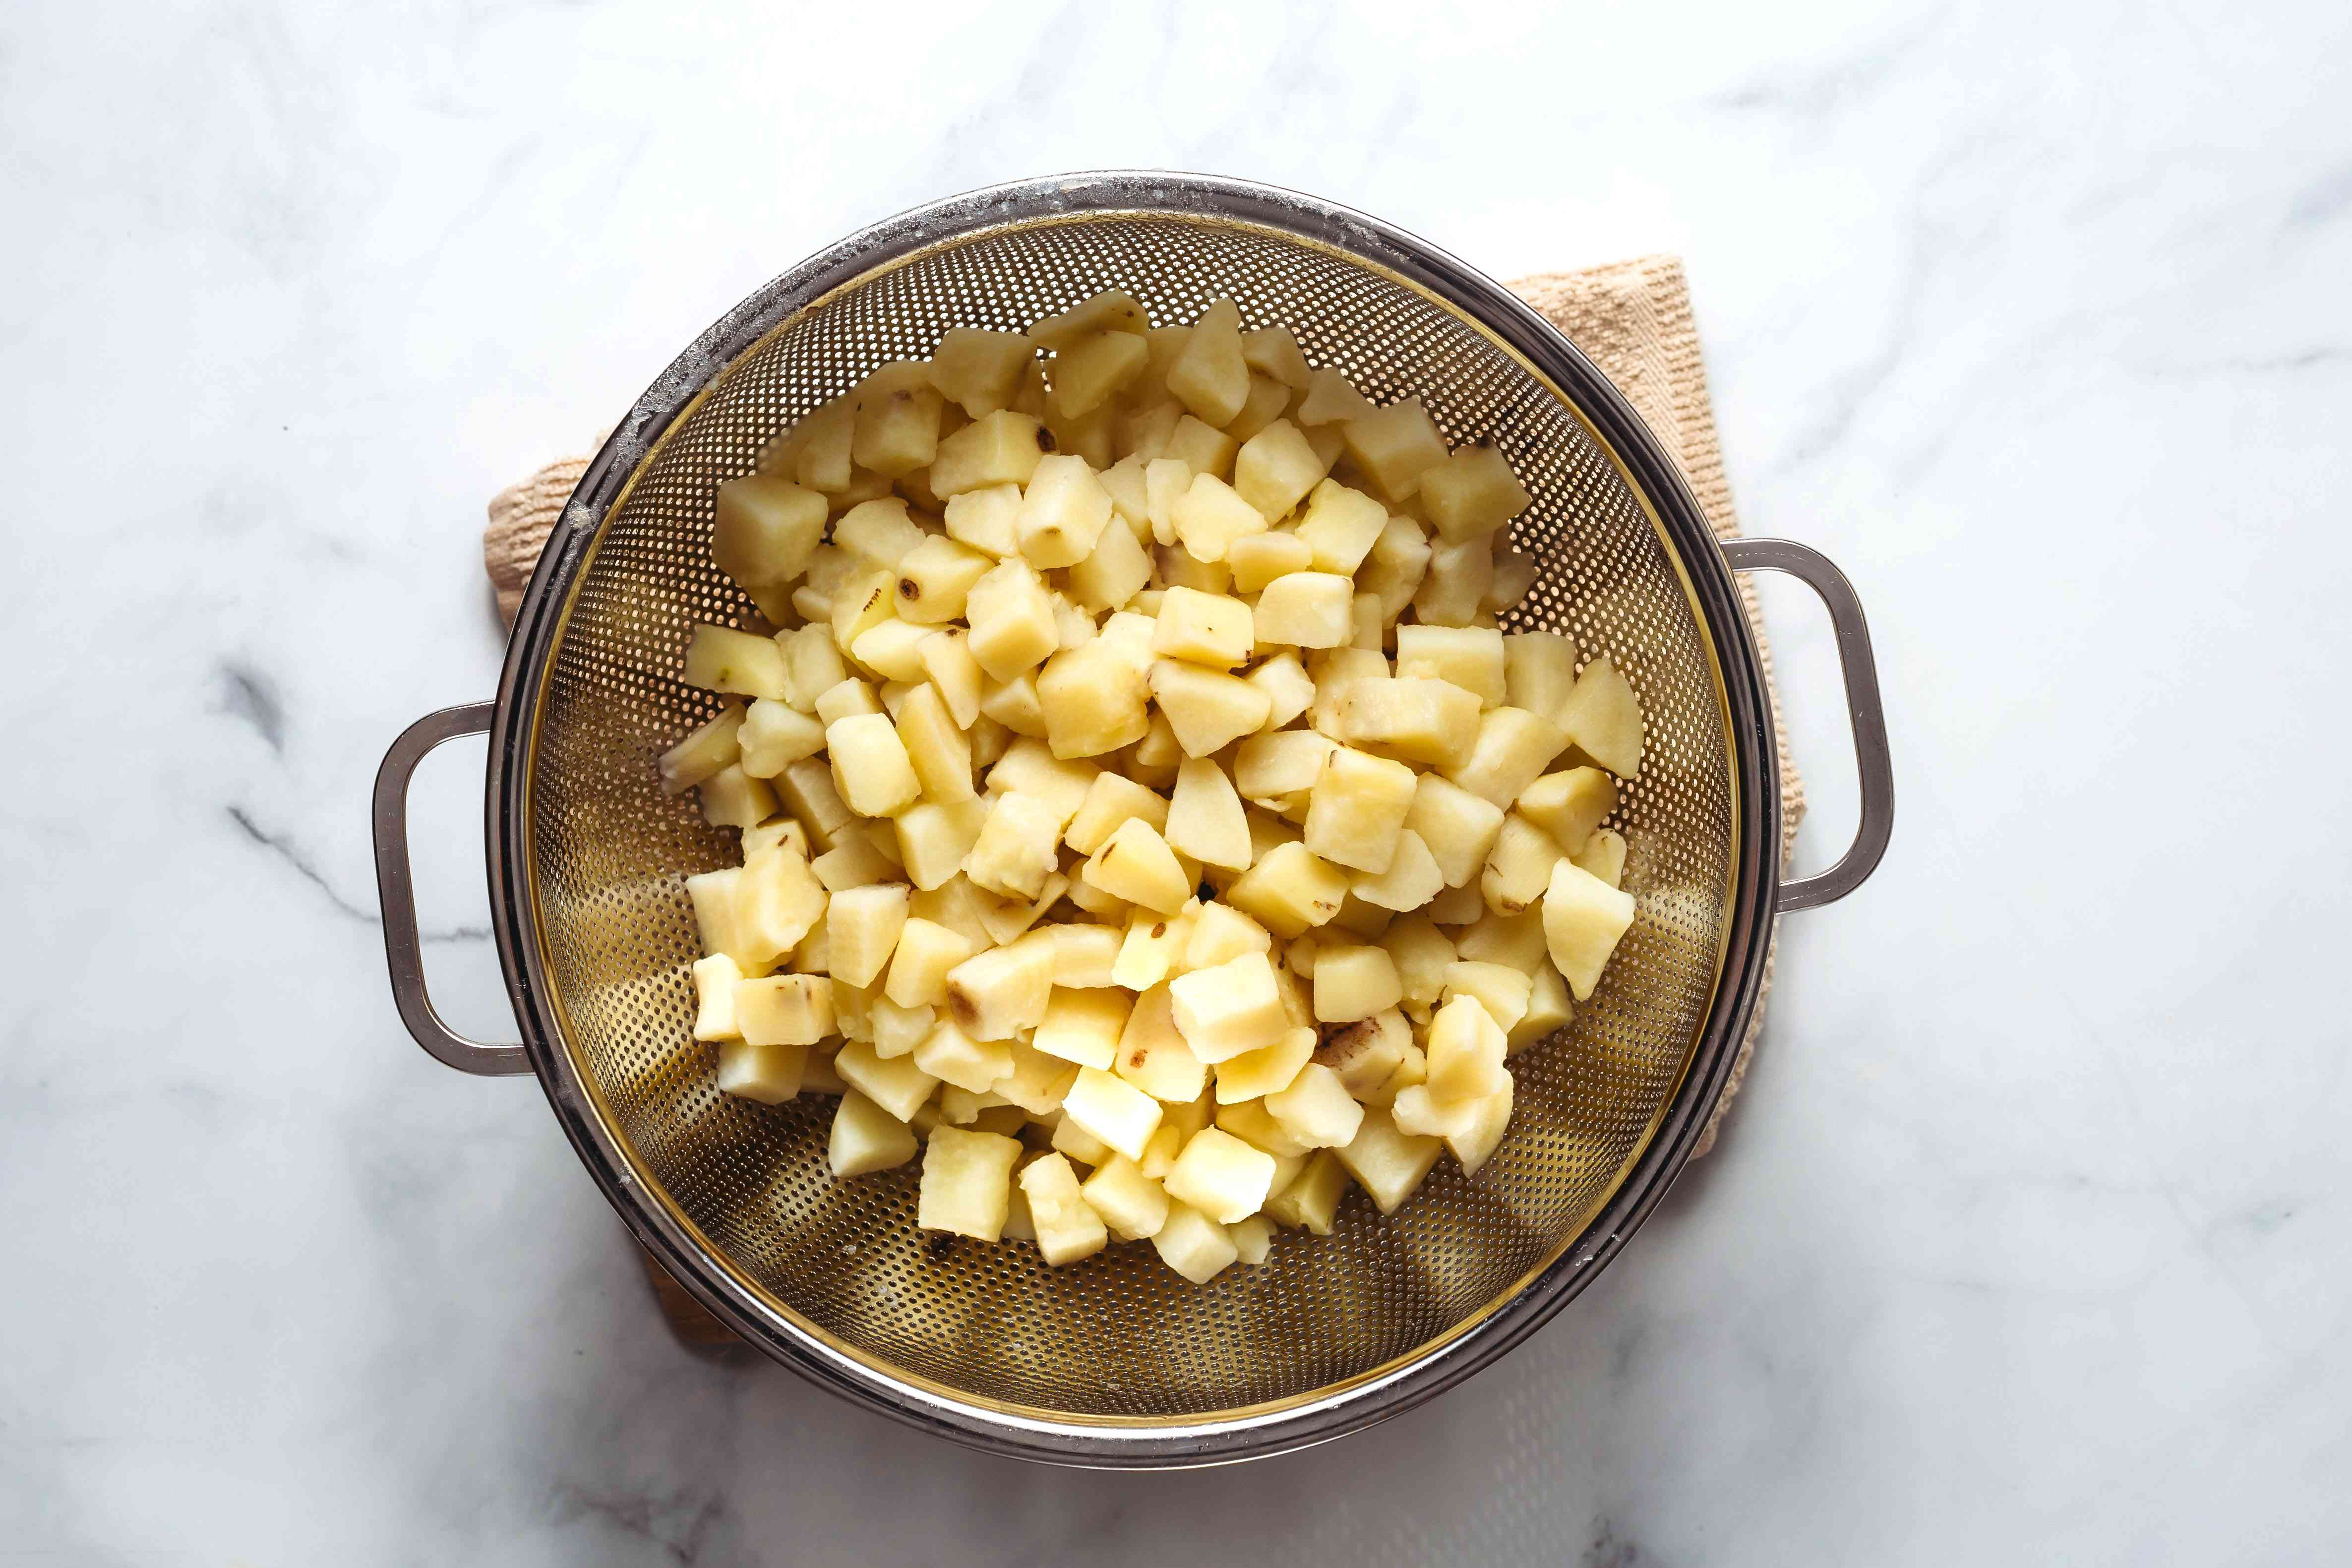 drained potatoes in a colander